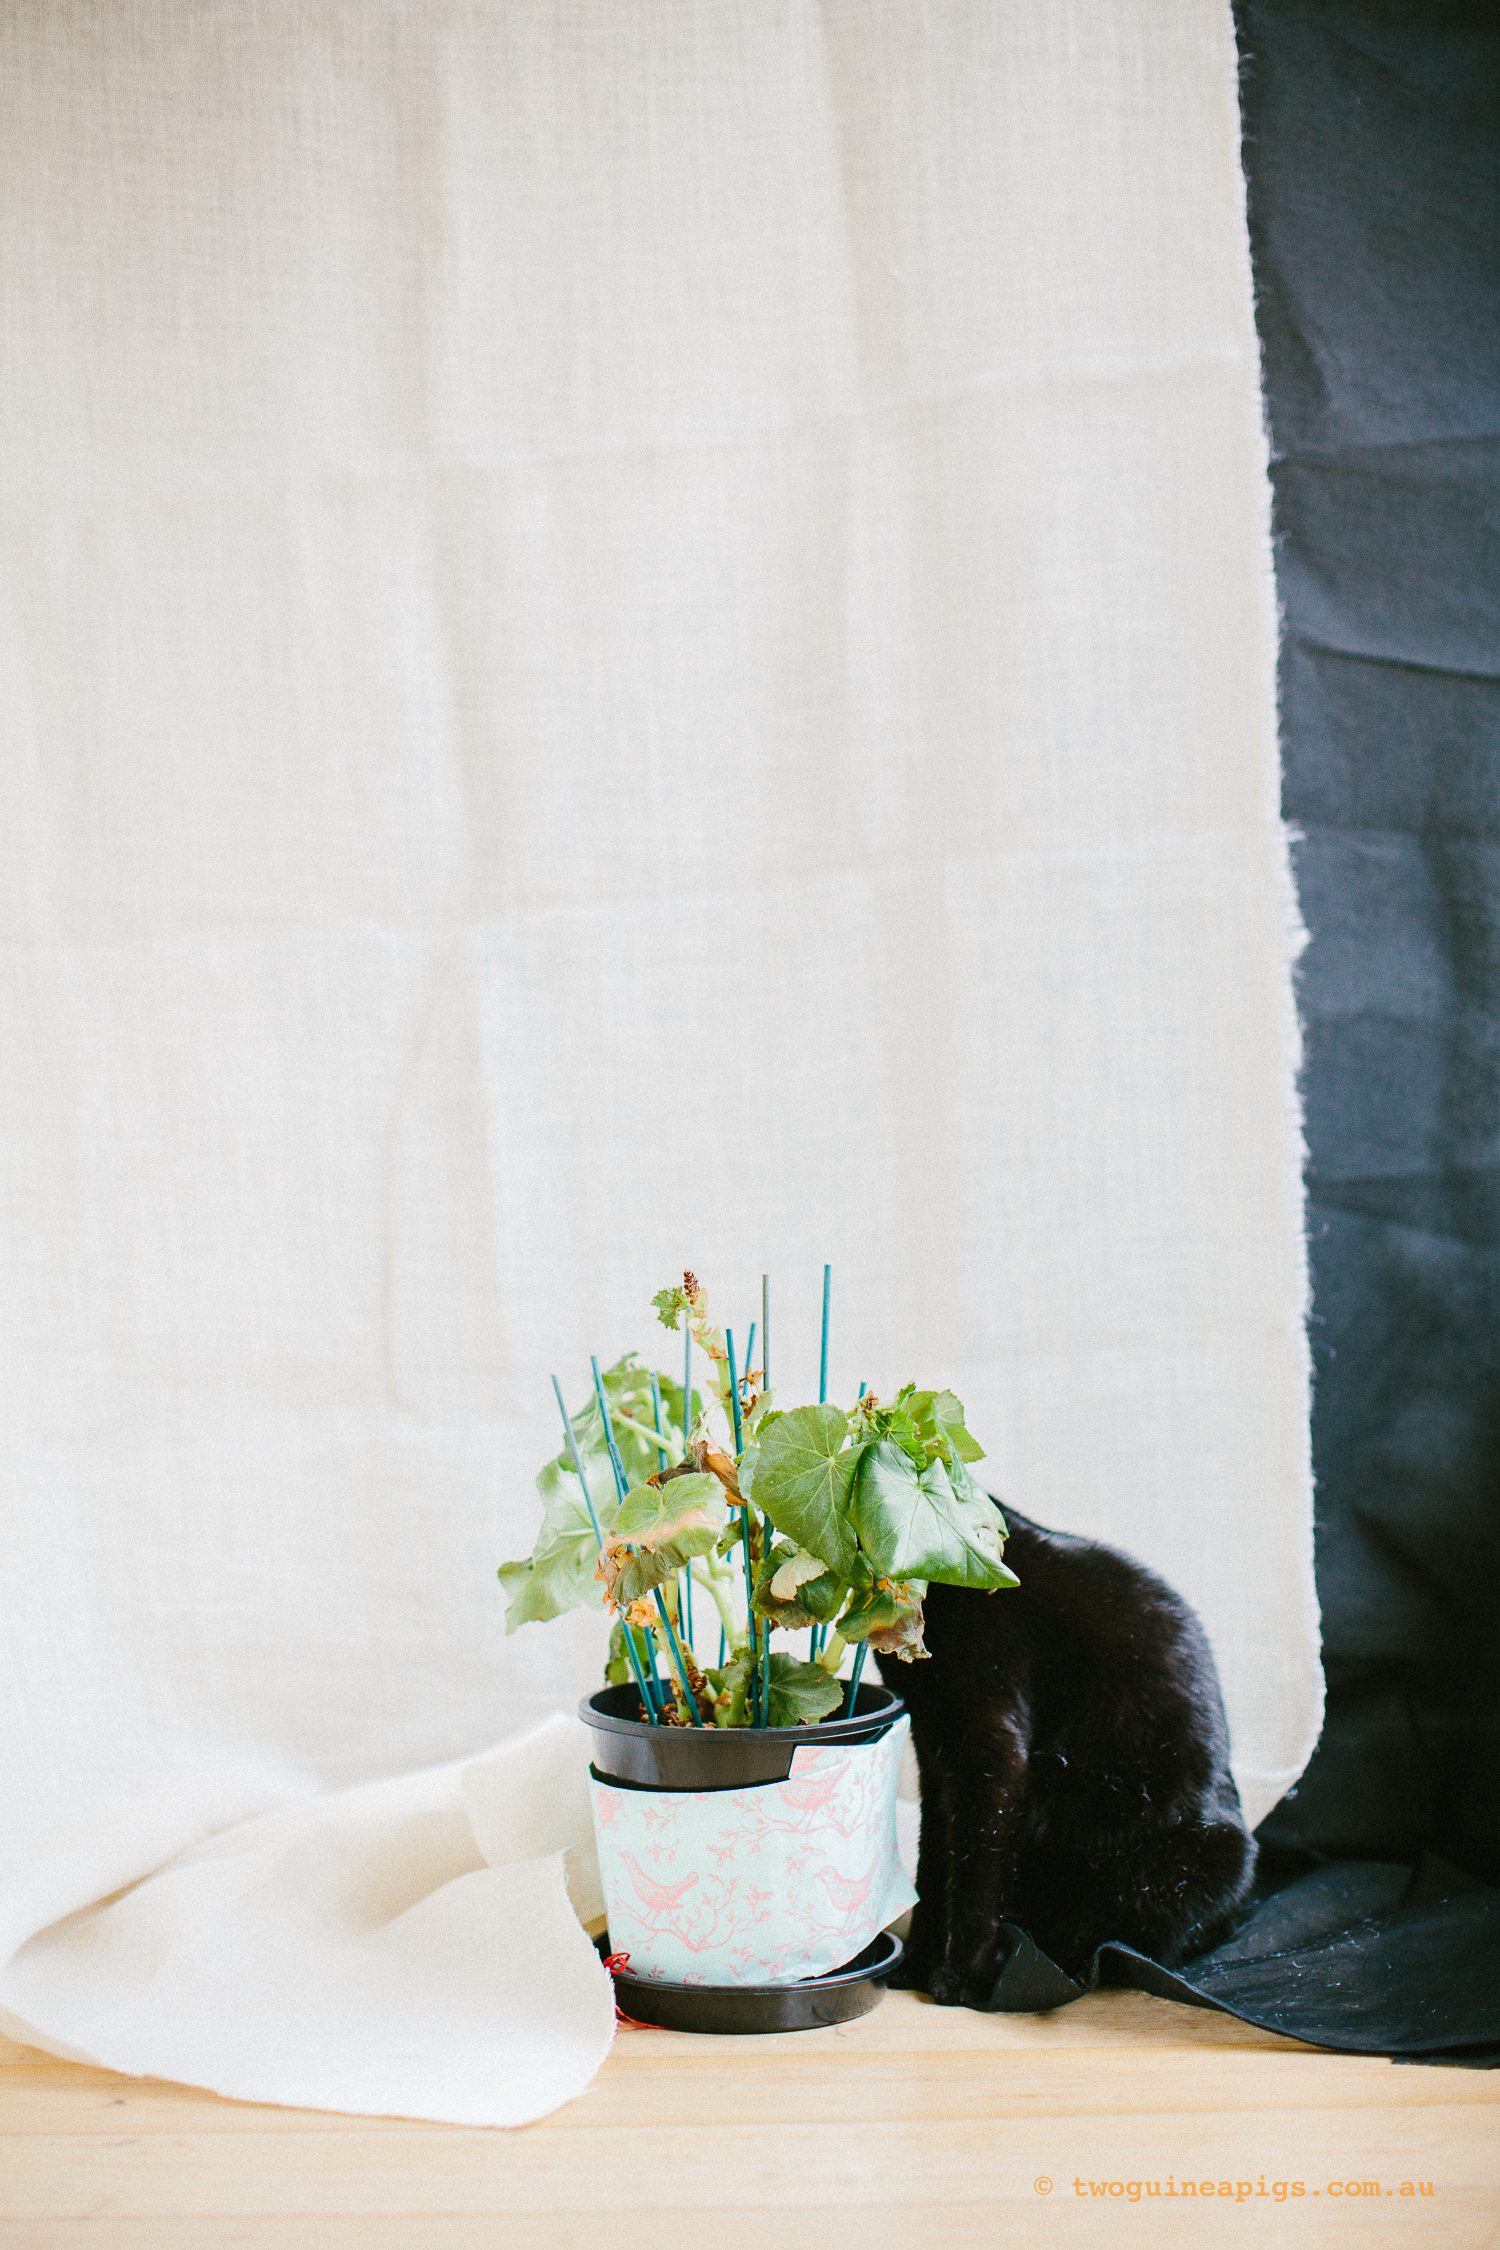 twoguineapigs_pet_photography_ruby_slipper_cat_floral_series_TEST_1500-24.jpg